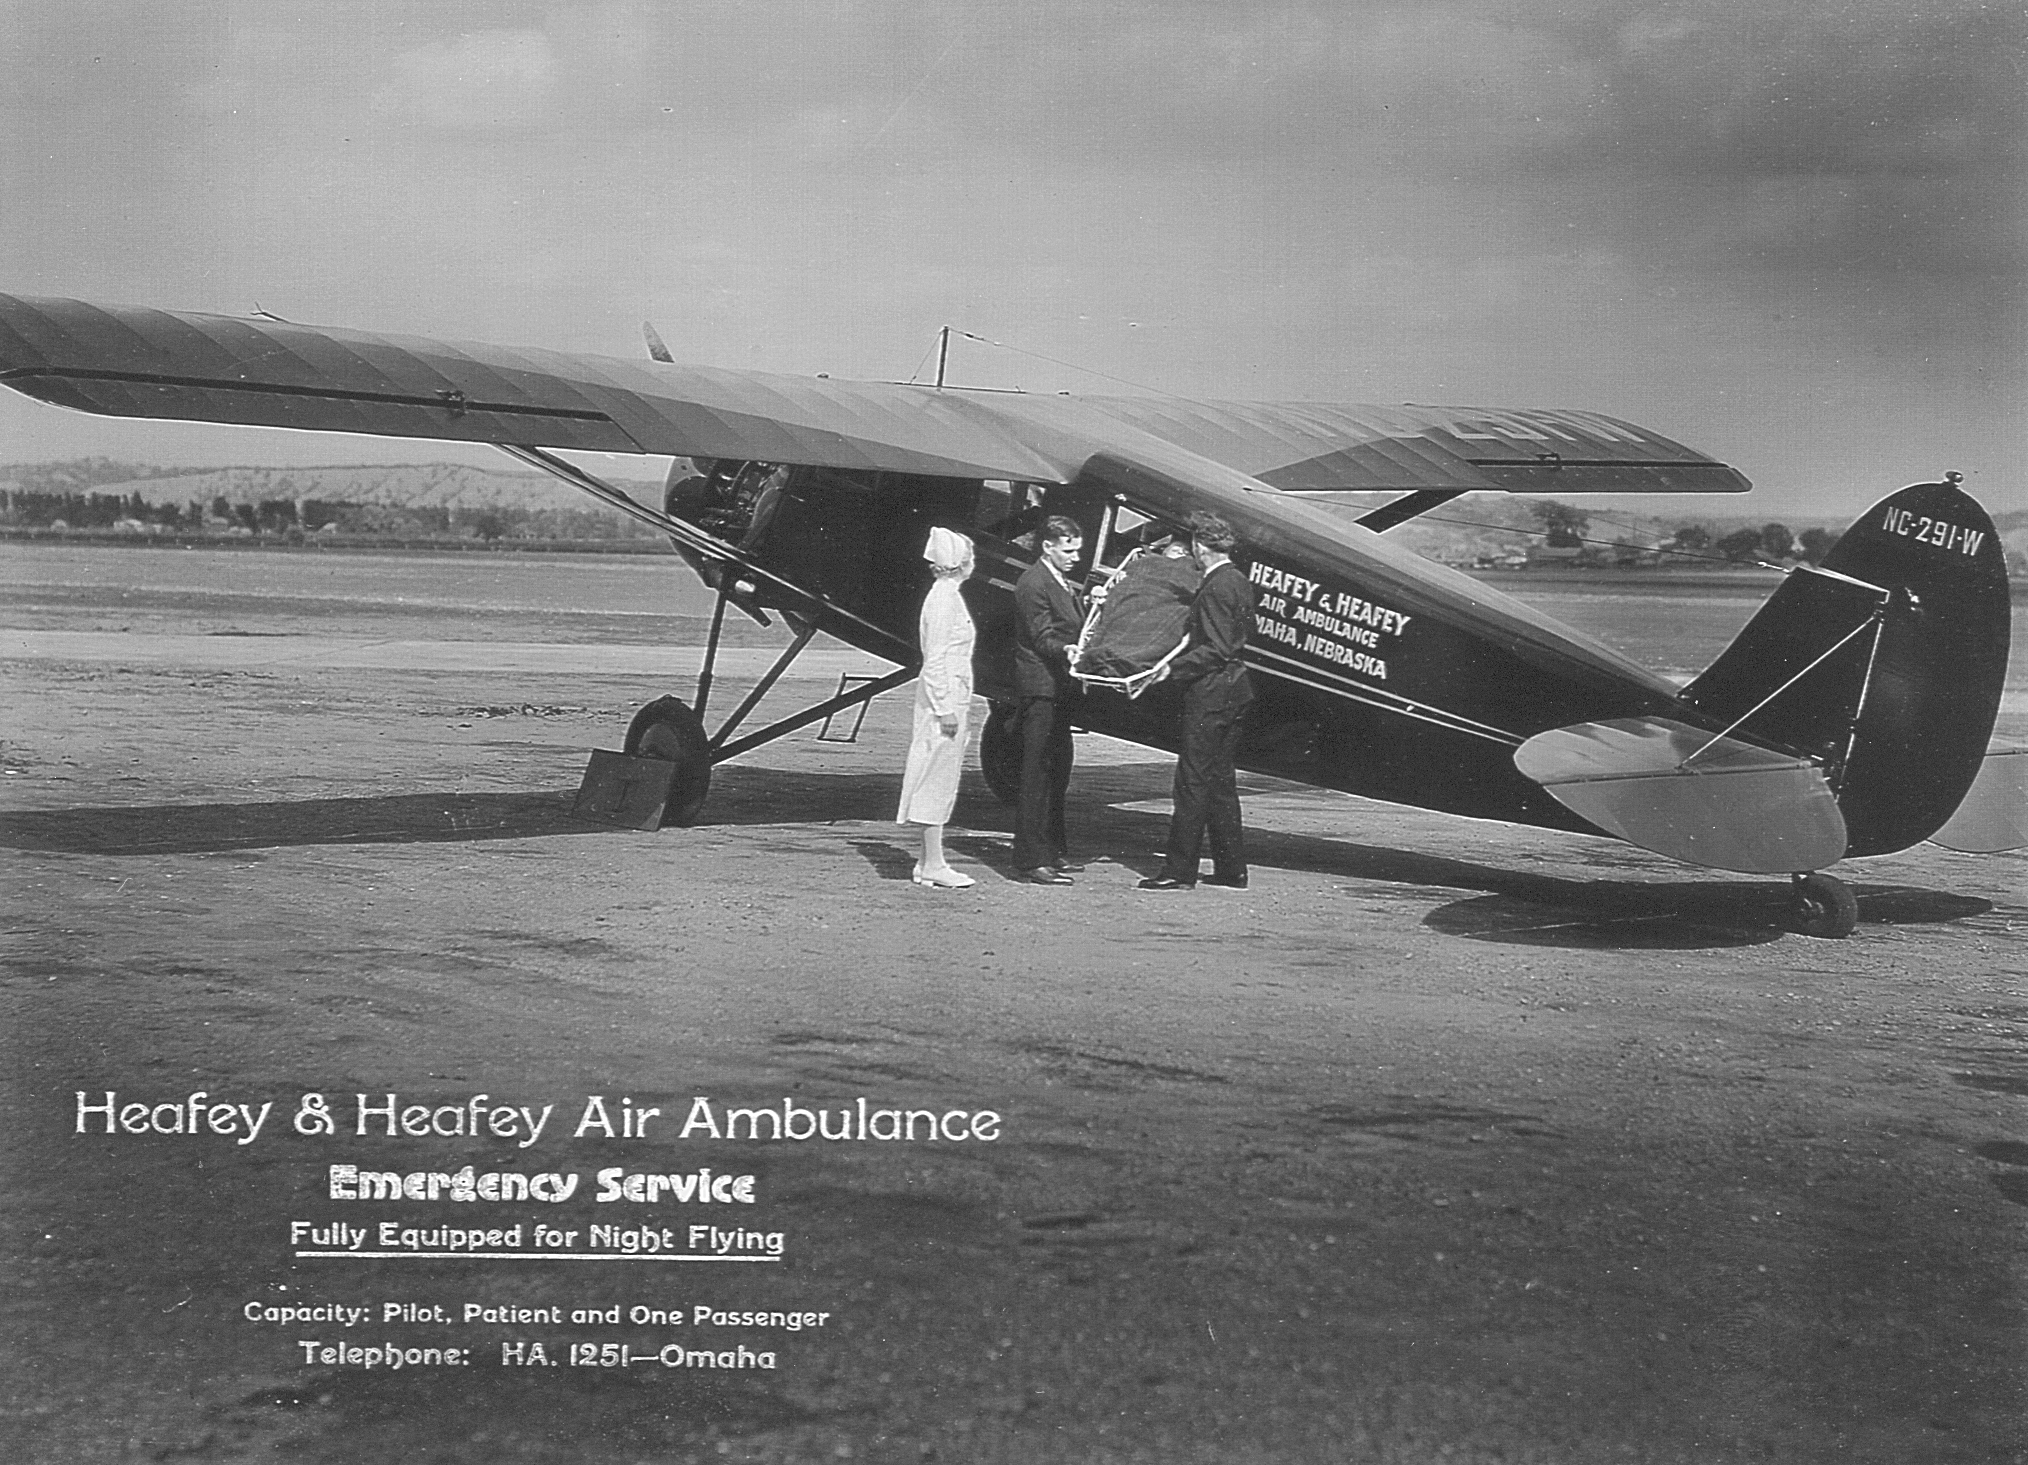 Heafey Air Ambulance